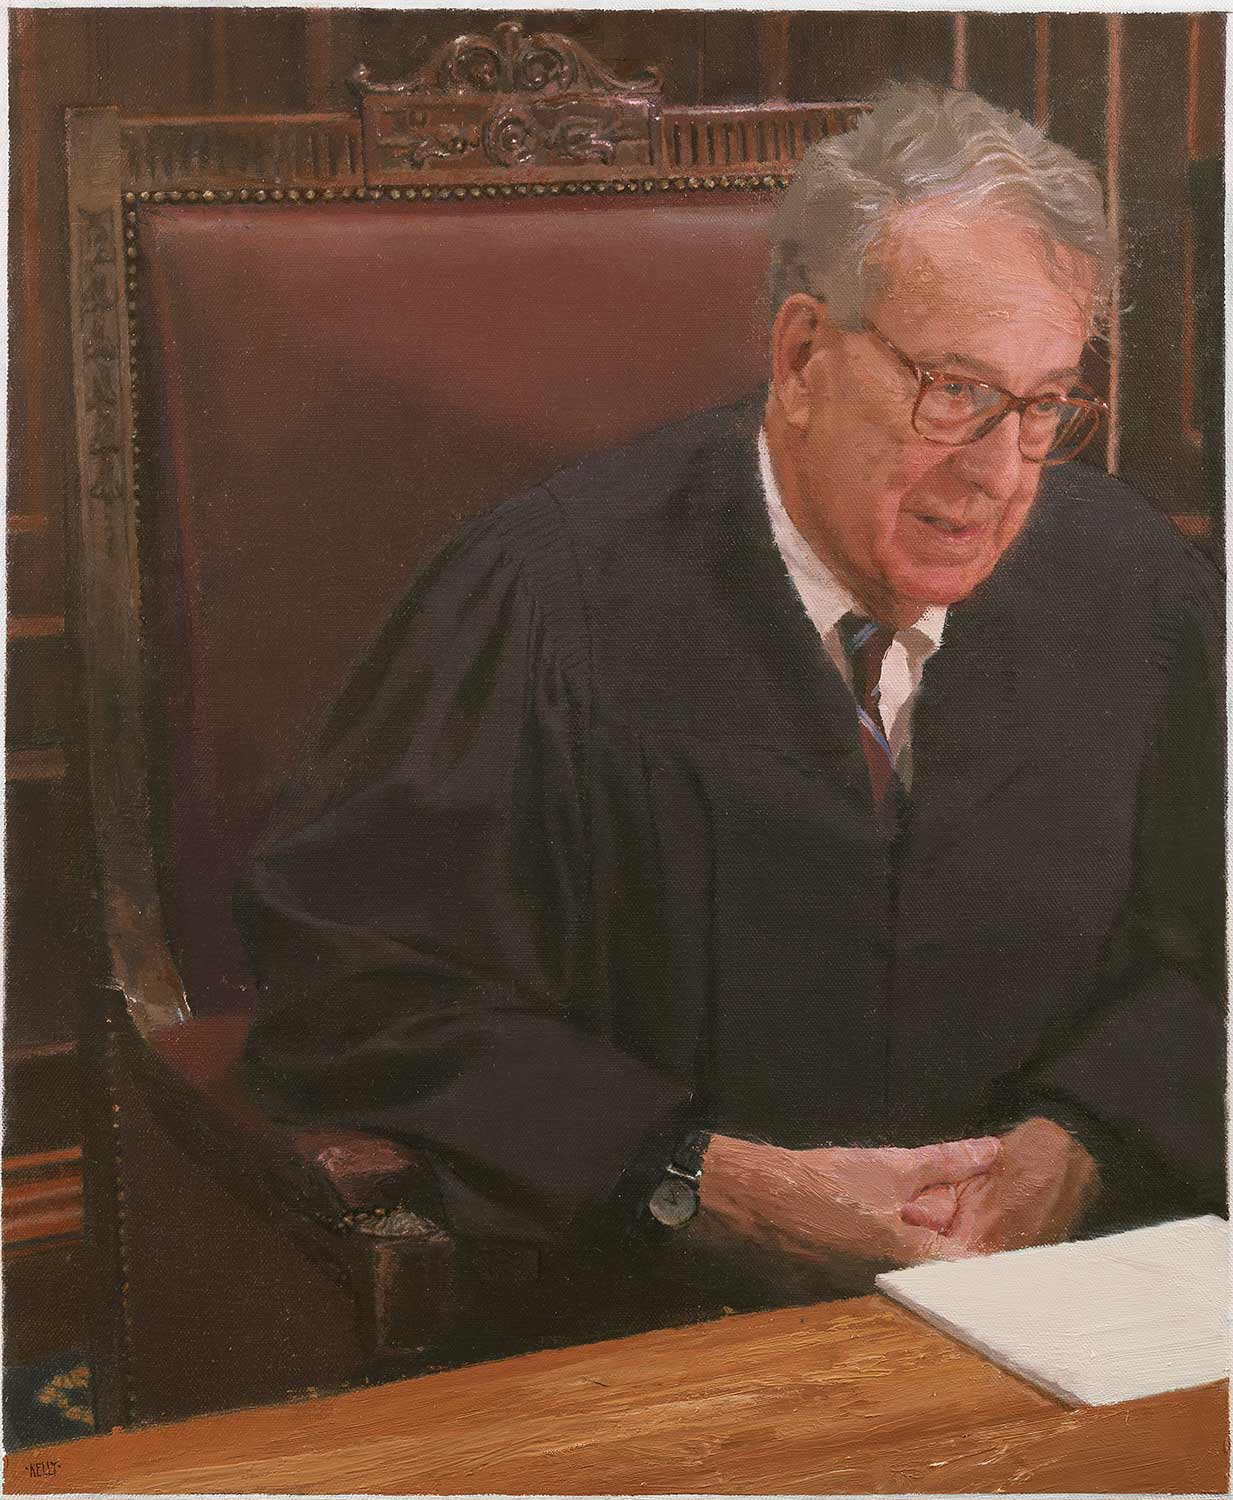 Judge Timothy Dyk